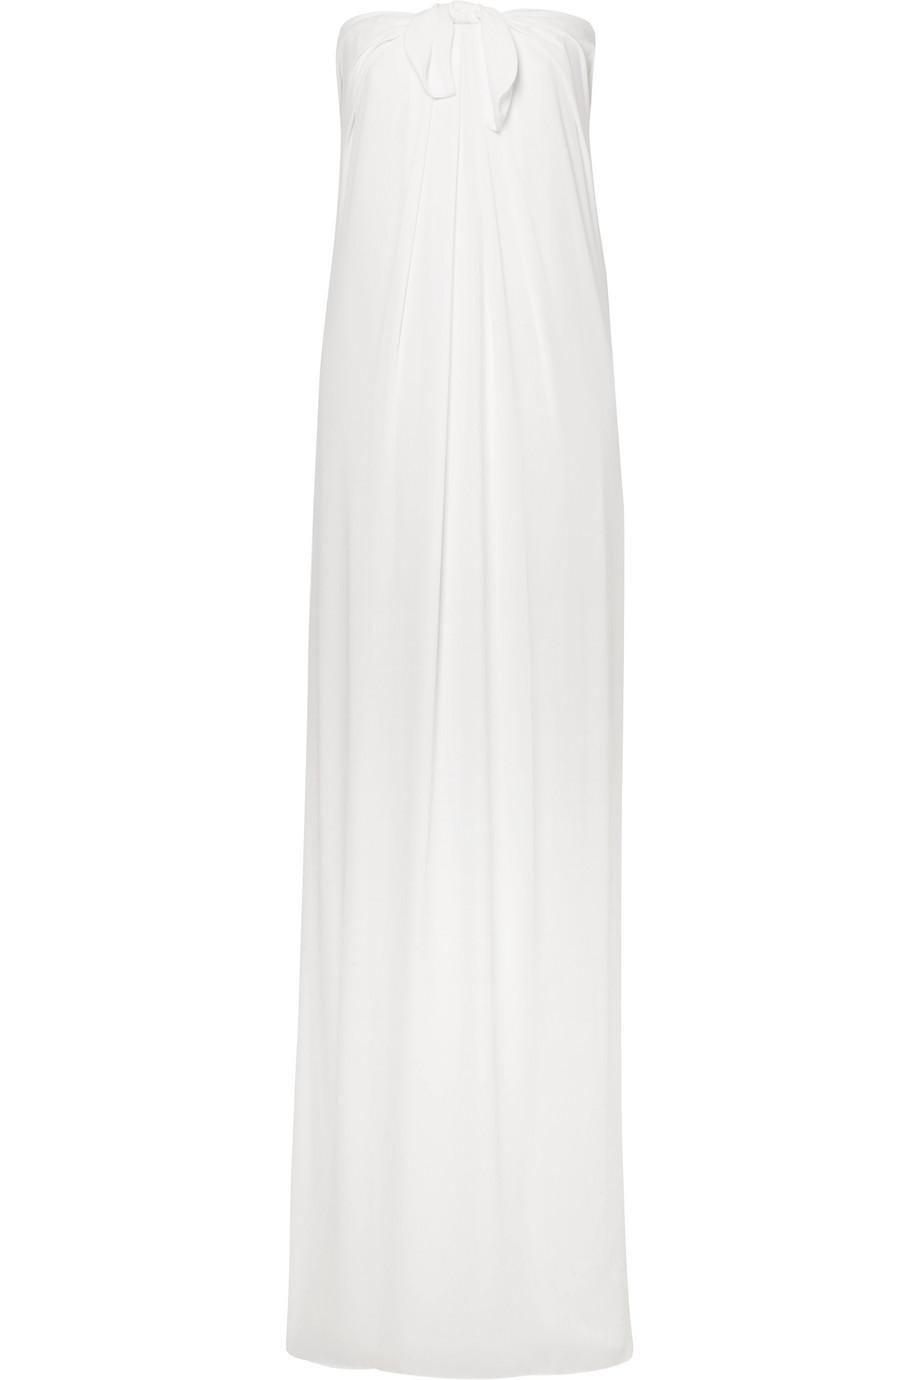 Tie-front Georgette Maxi Dress - White Halston Heritage